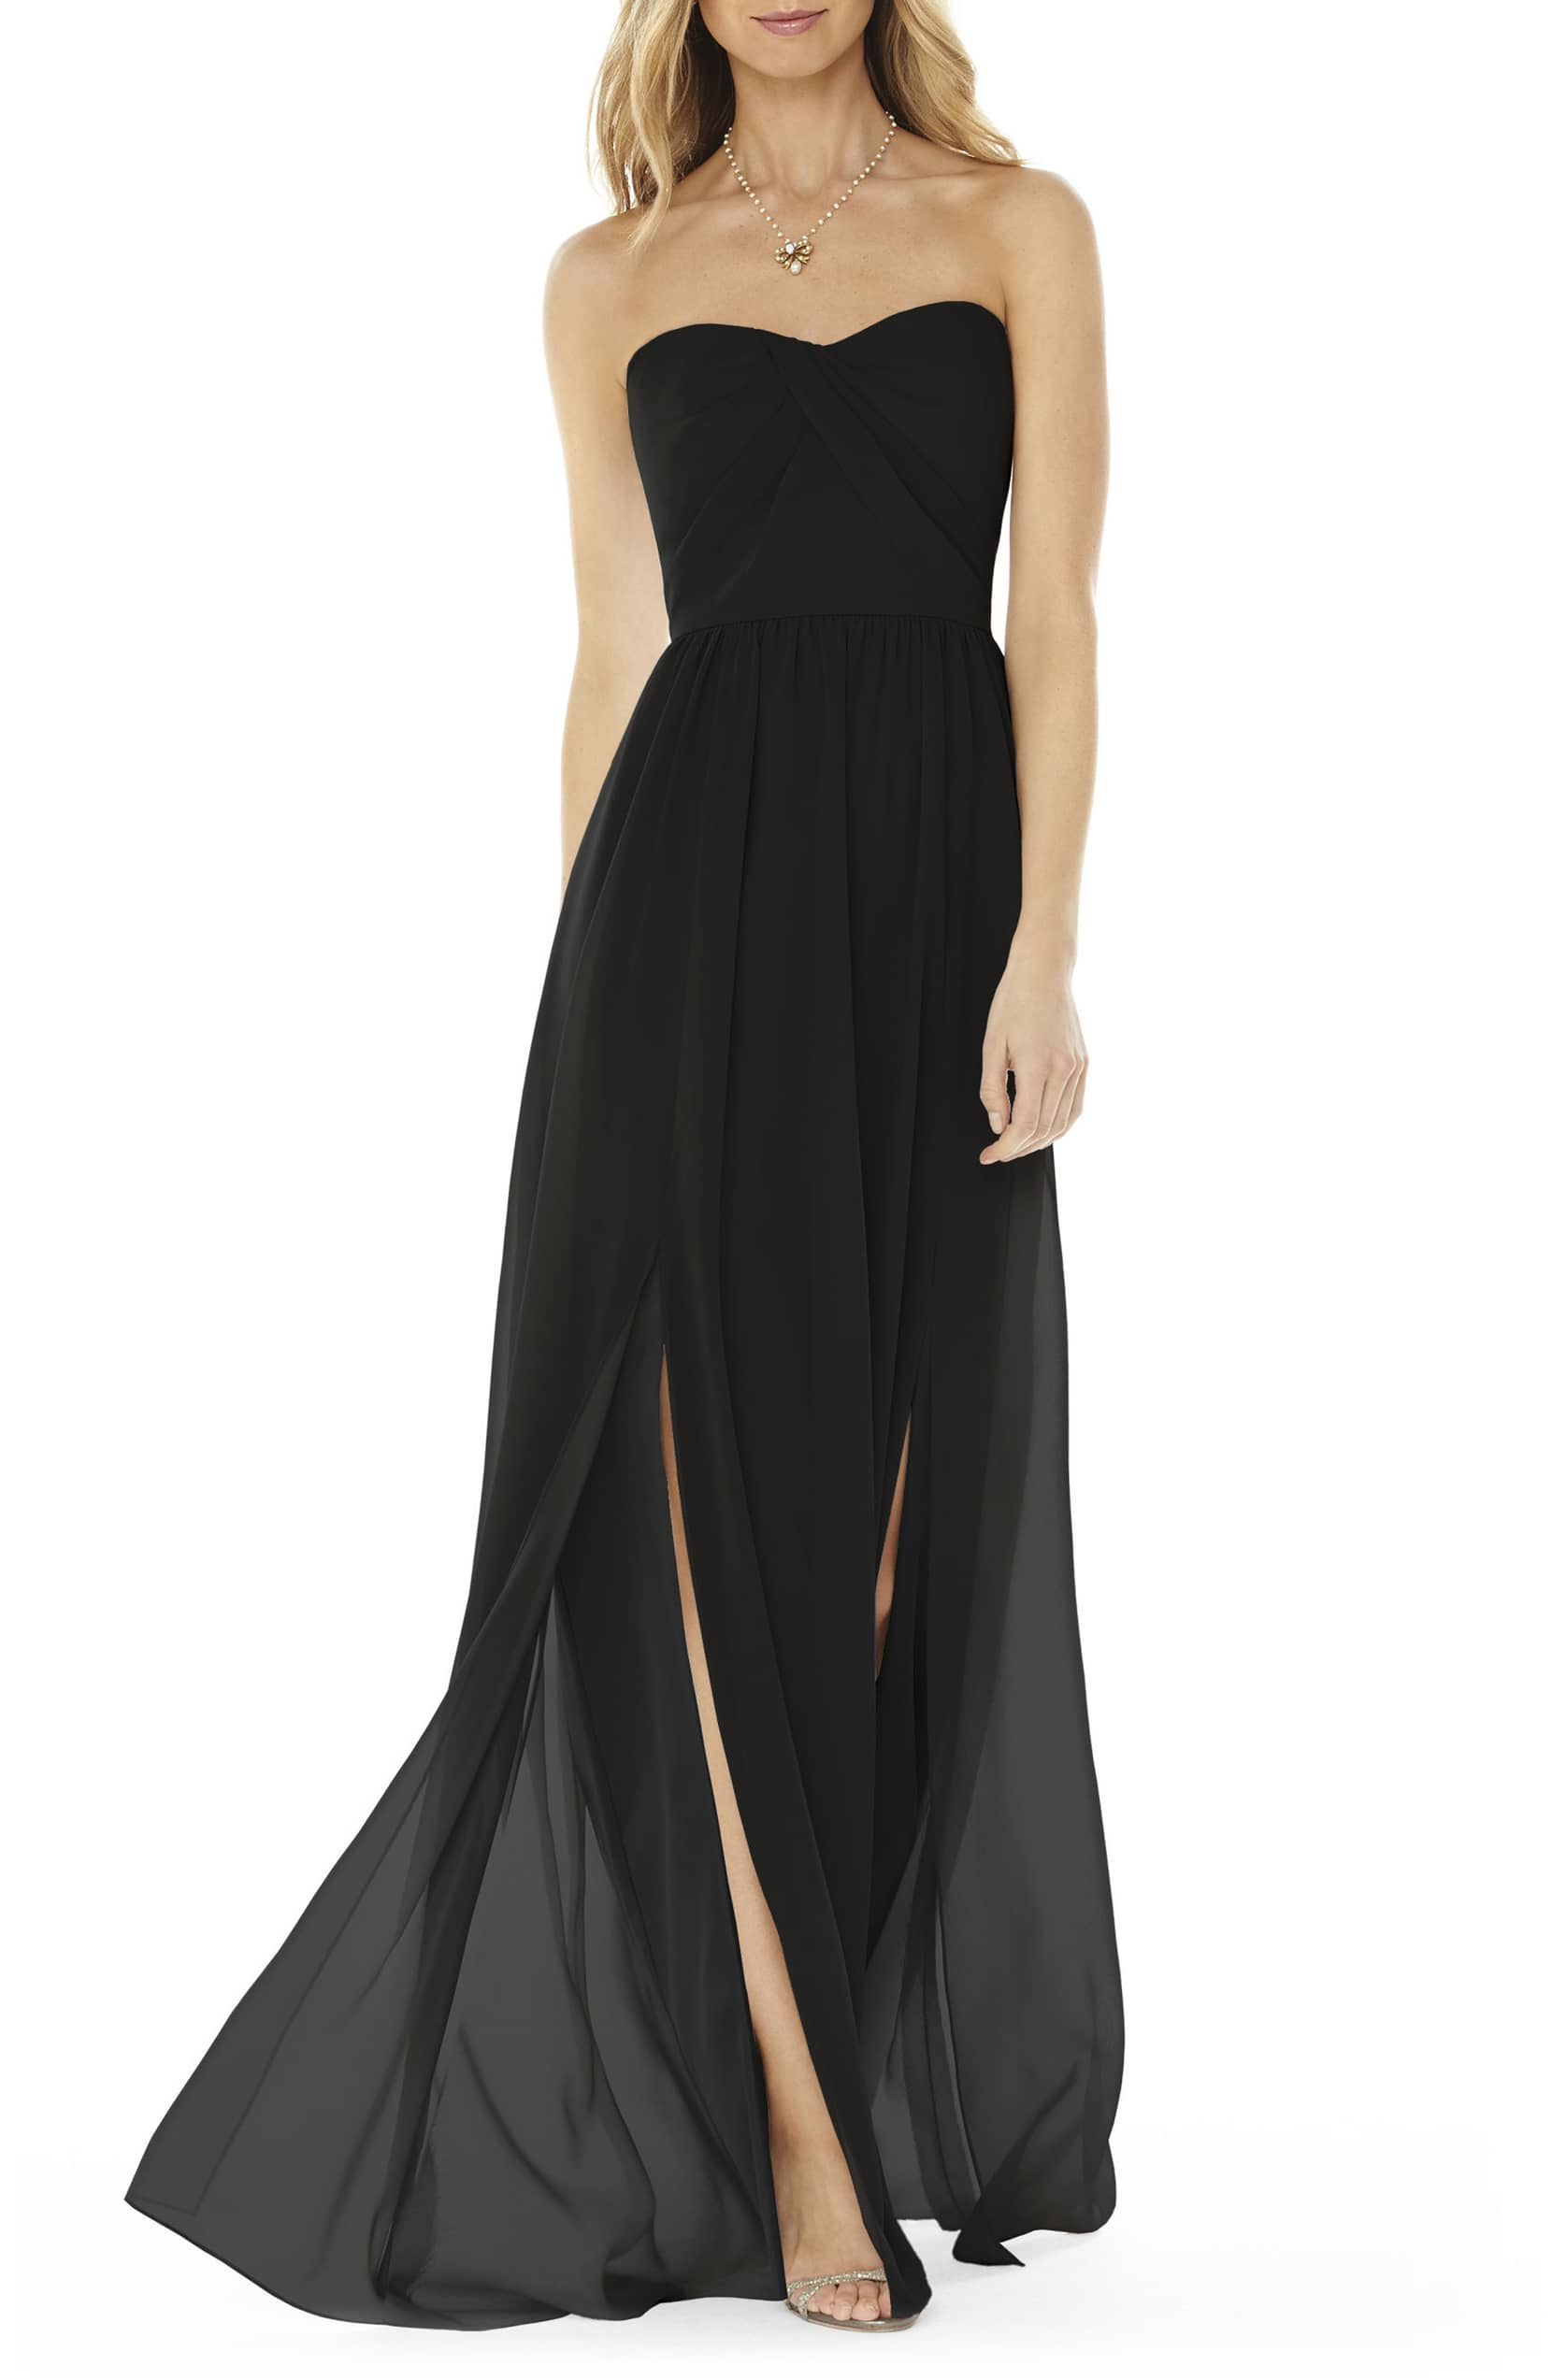 SOCIAL BRIDESMAIDS Strapless Georgette Black Gown